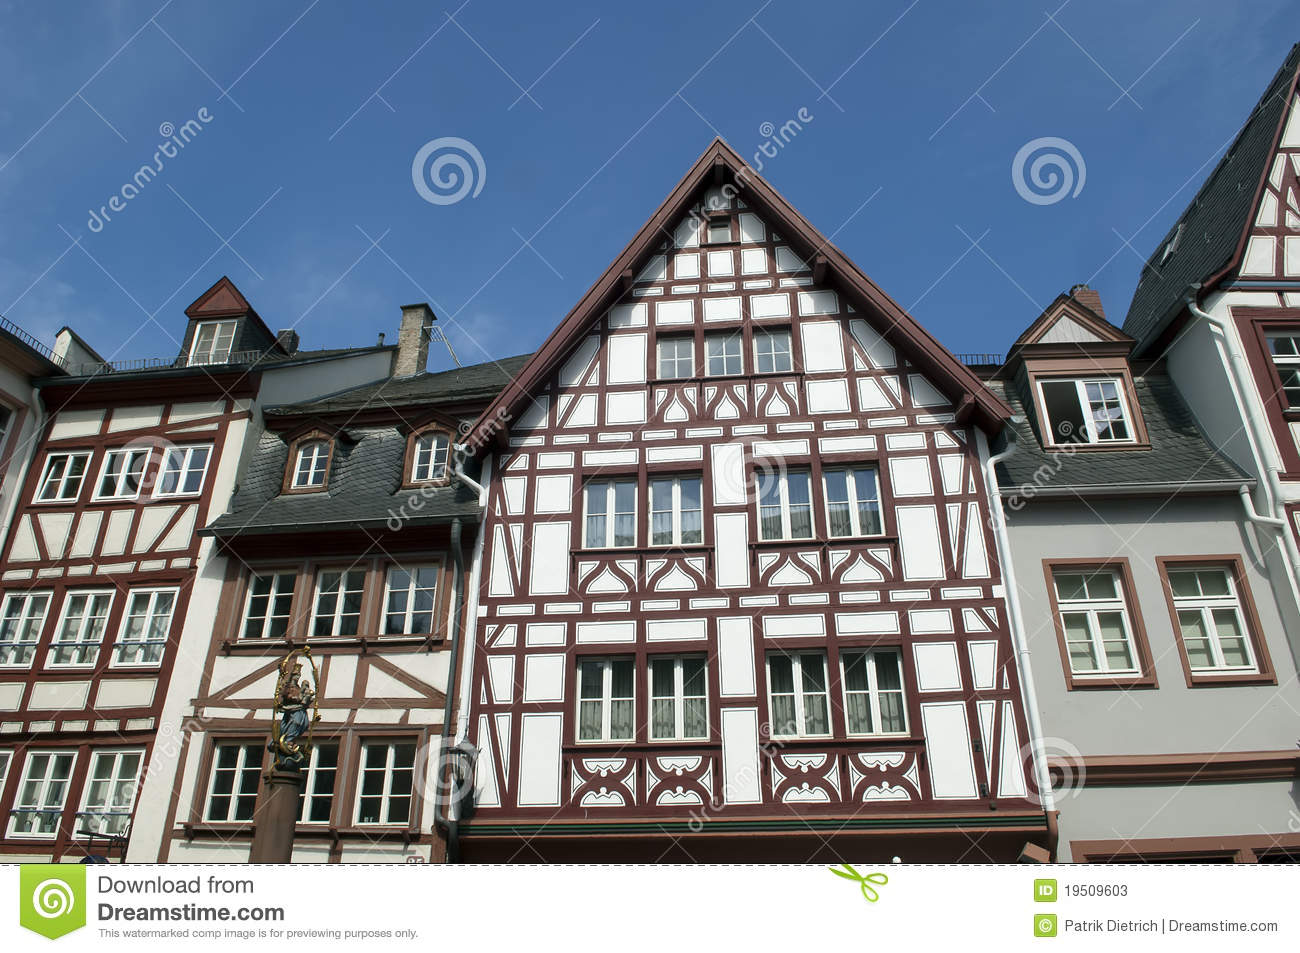 germany half house mainz old timber .